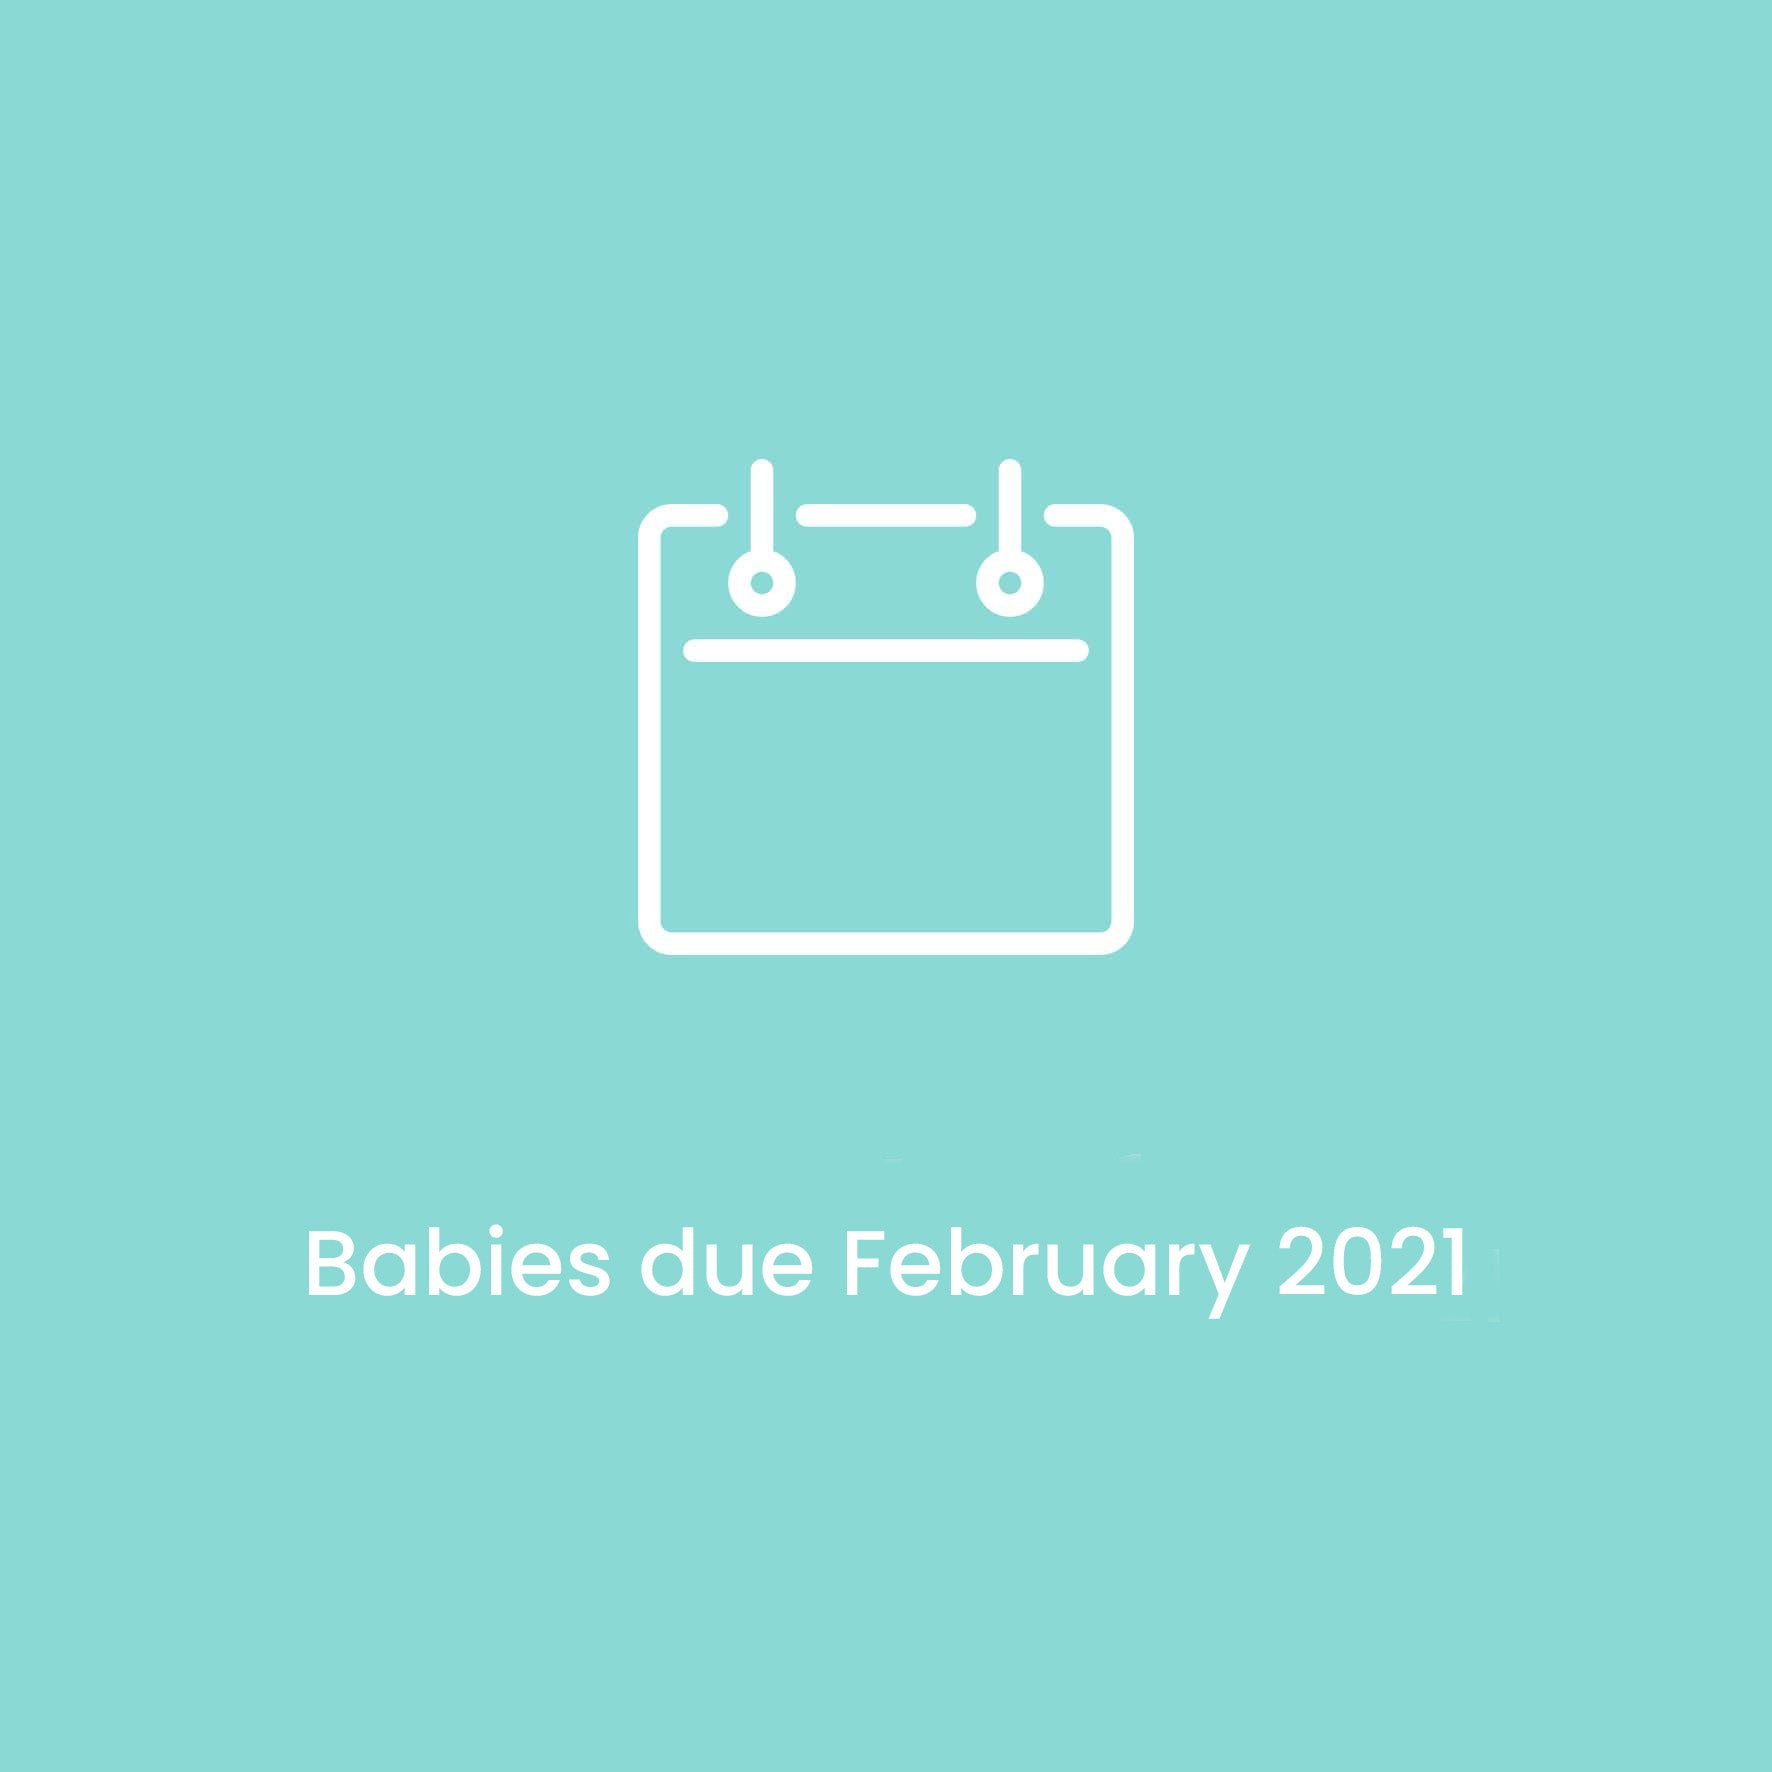 Babies due February 2021